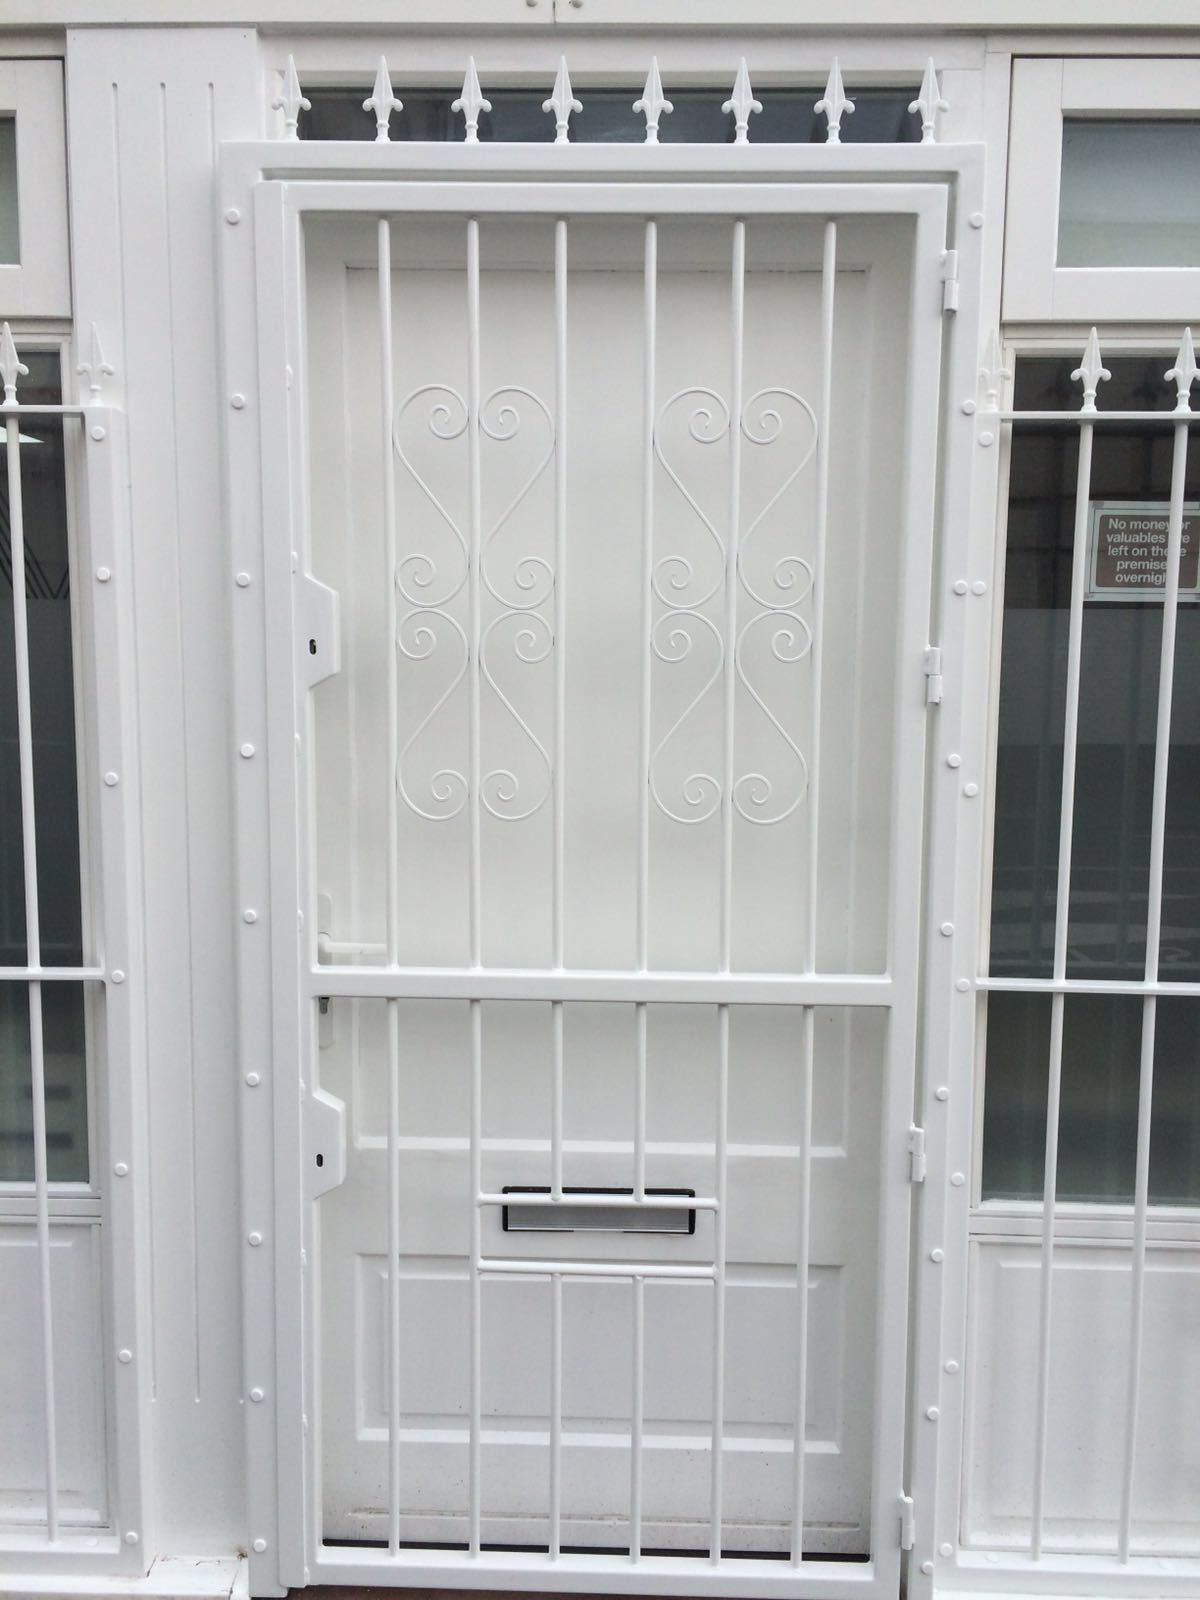 RSG3000 security door gate fitted to commercial